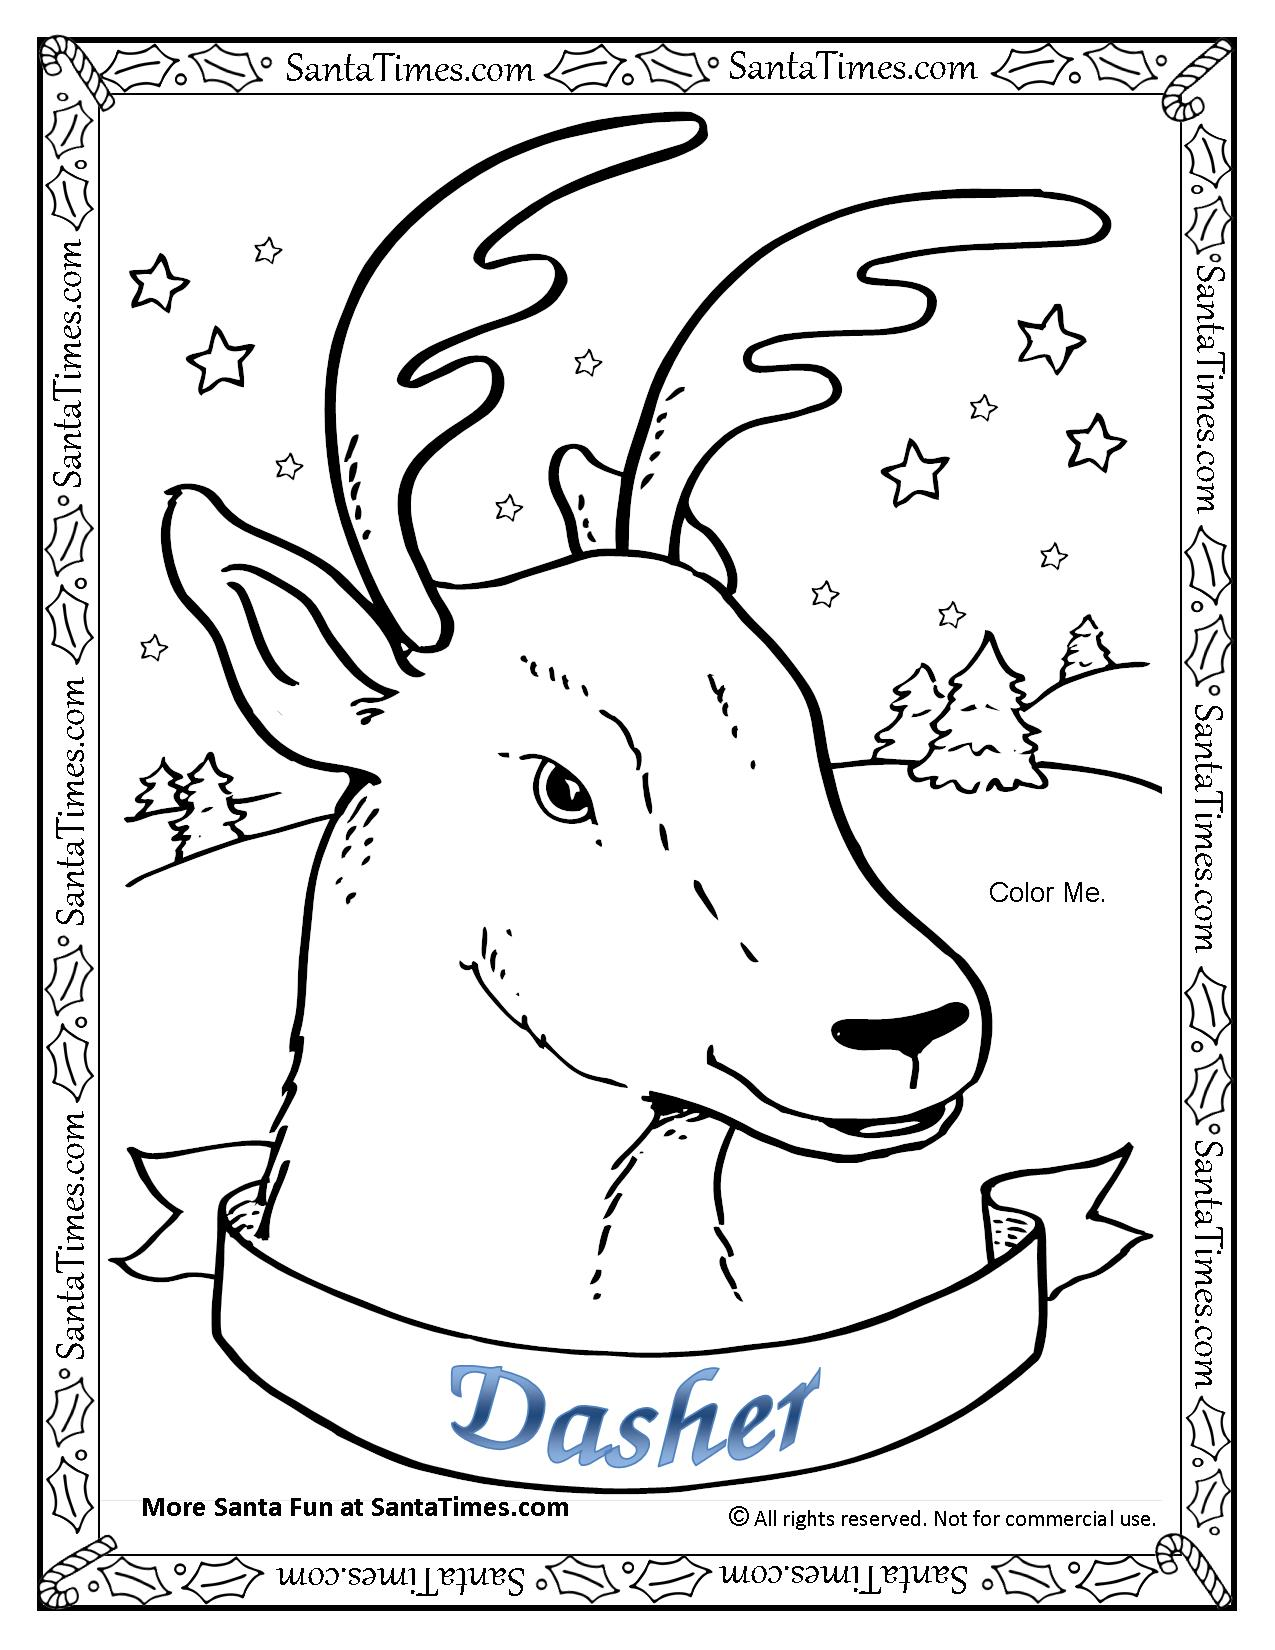 dasher the reindeer printable coloring page